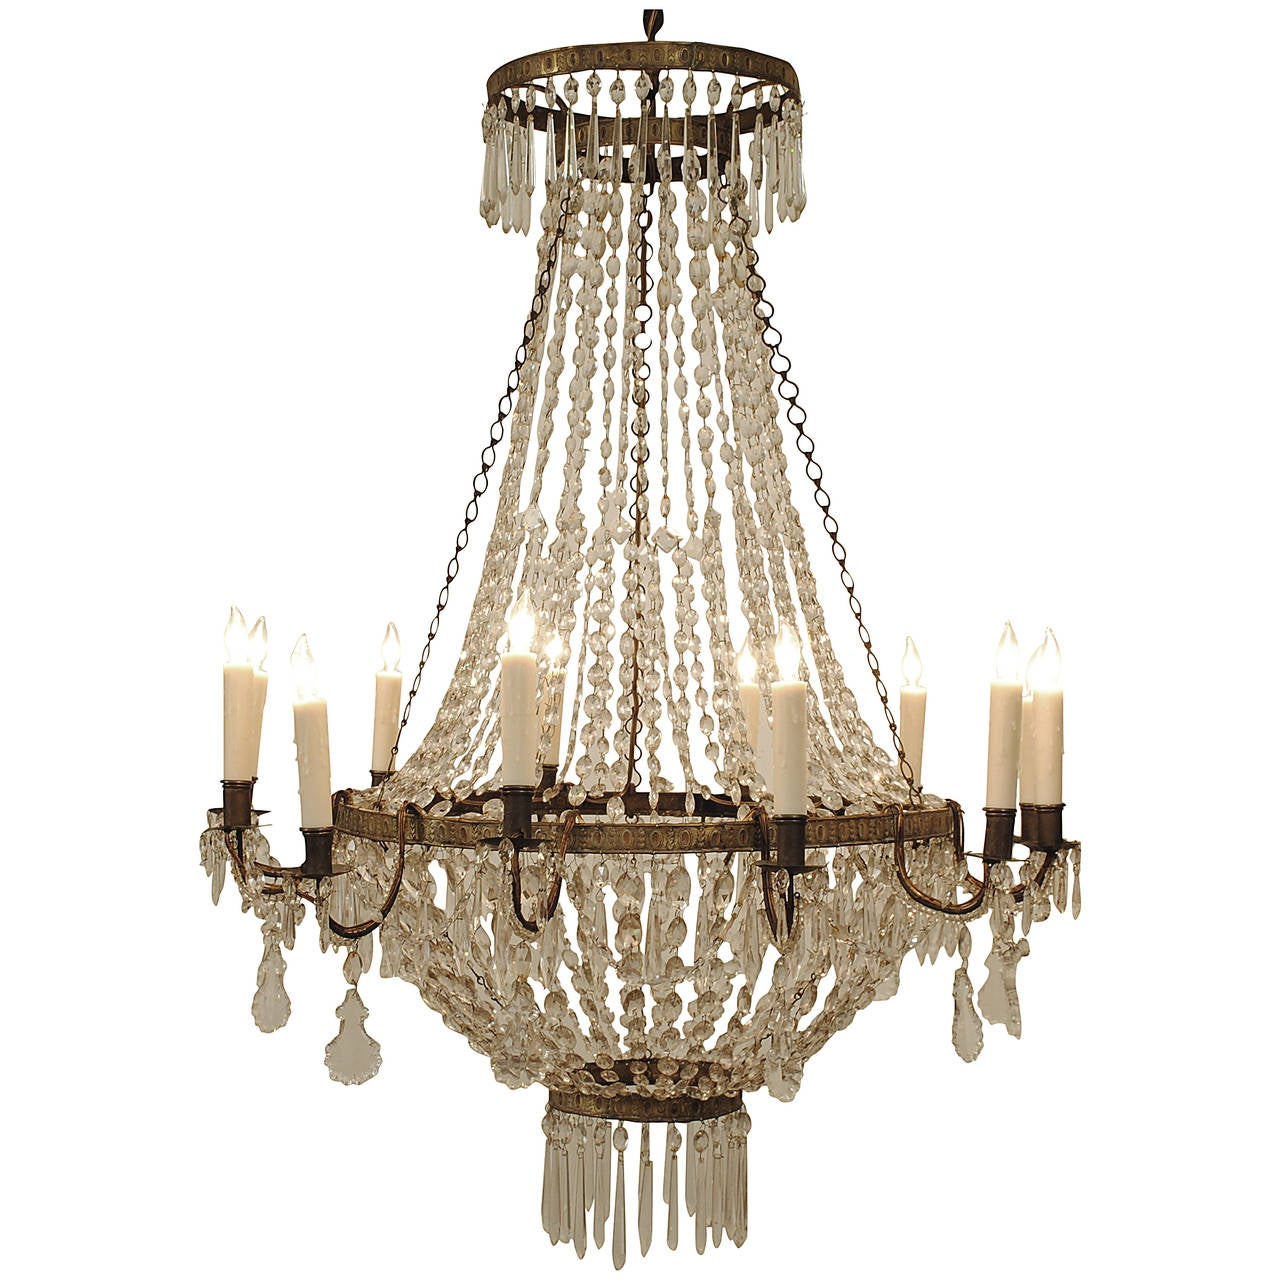 Glass Ring Chandelier: Italian Neoclassical, Stamped Brass And Glass Four-Ring 12